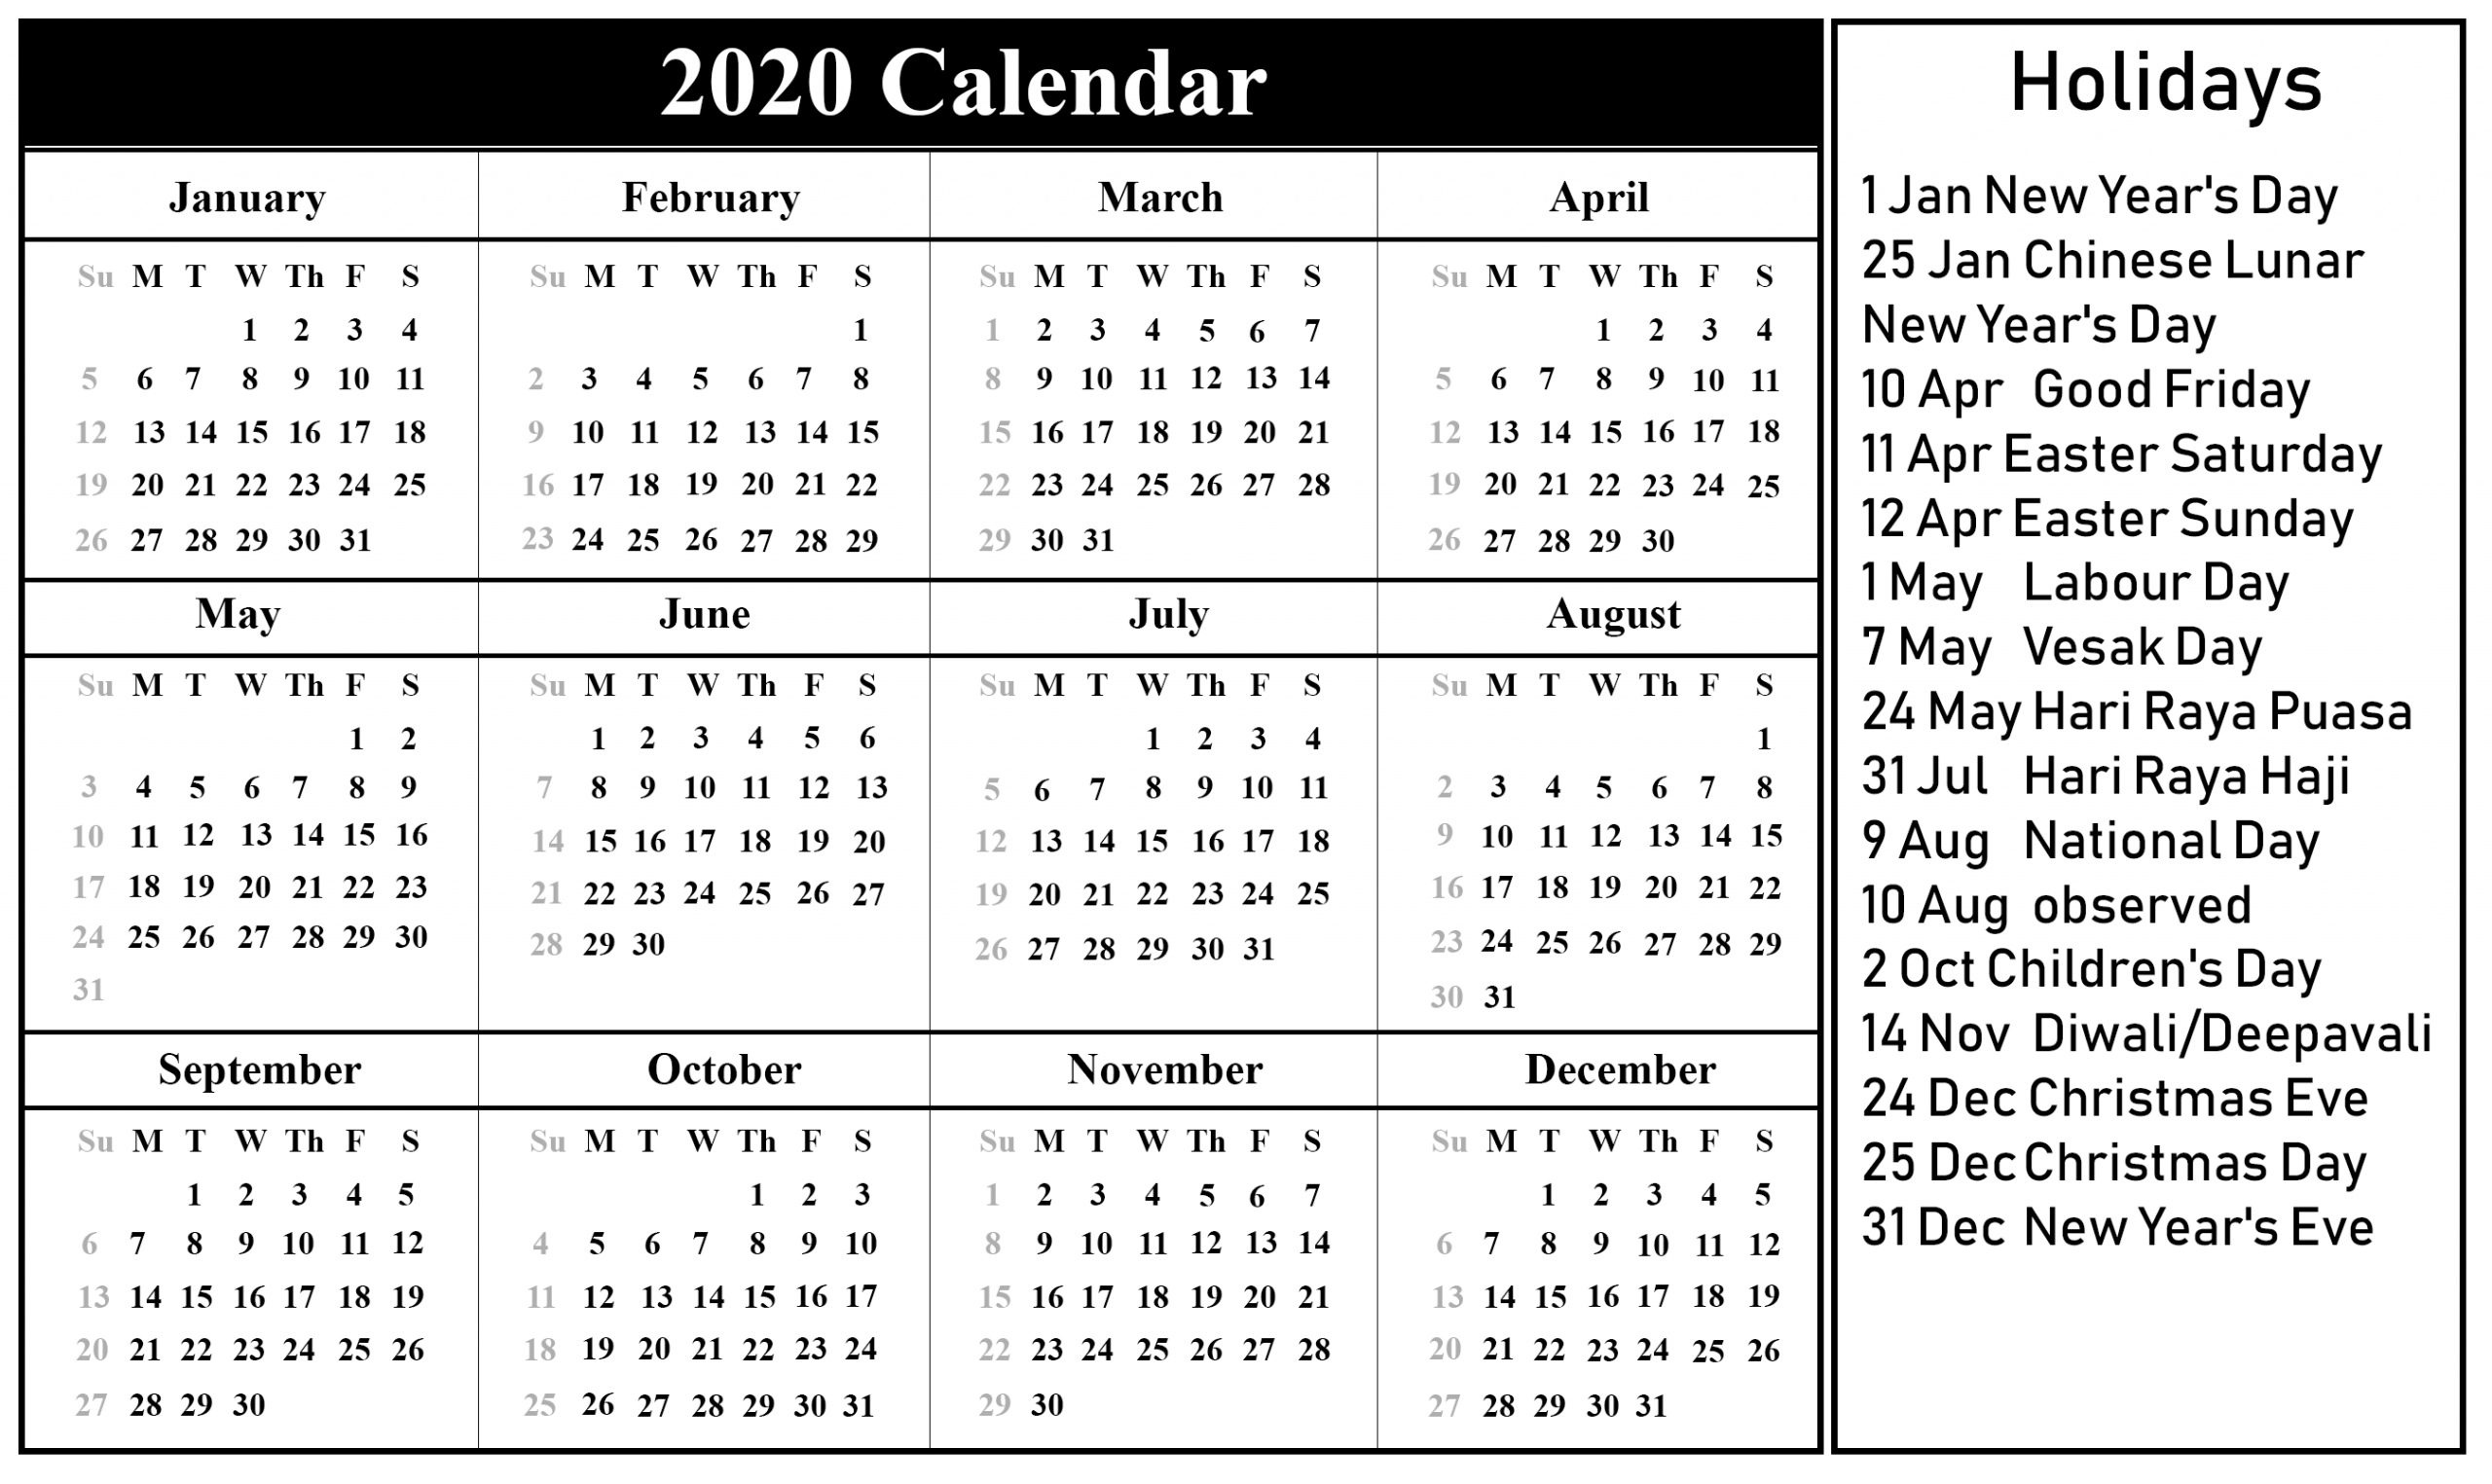 Printable Government Calendar 2020 | Printable Calendar 2020